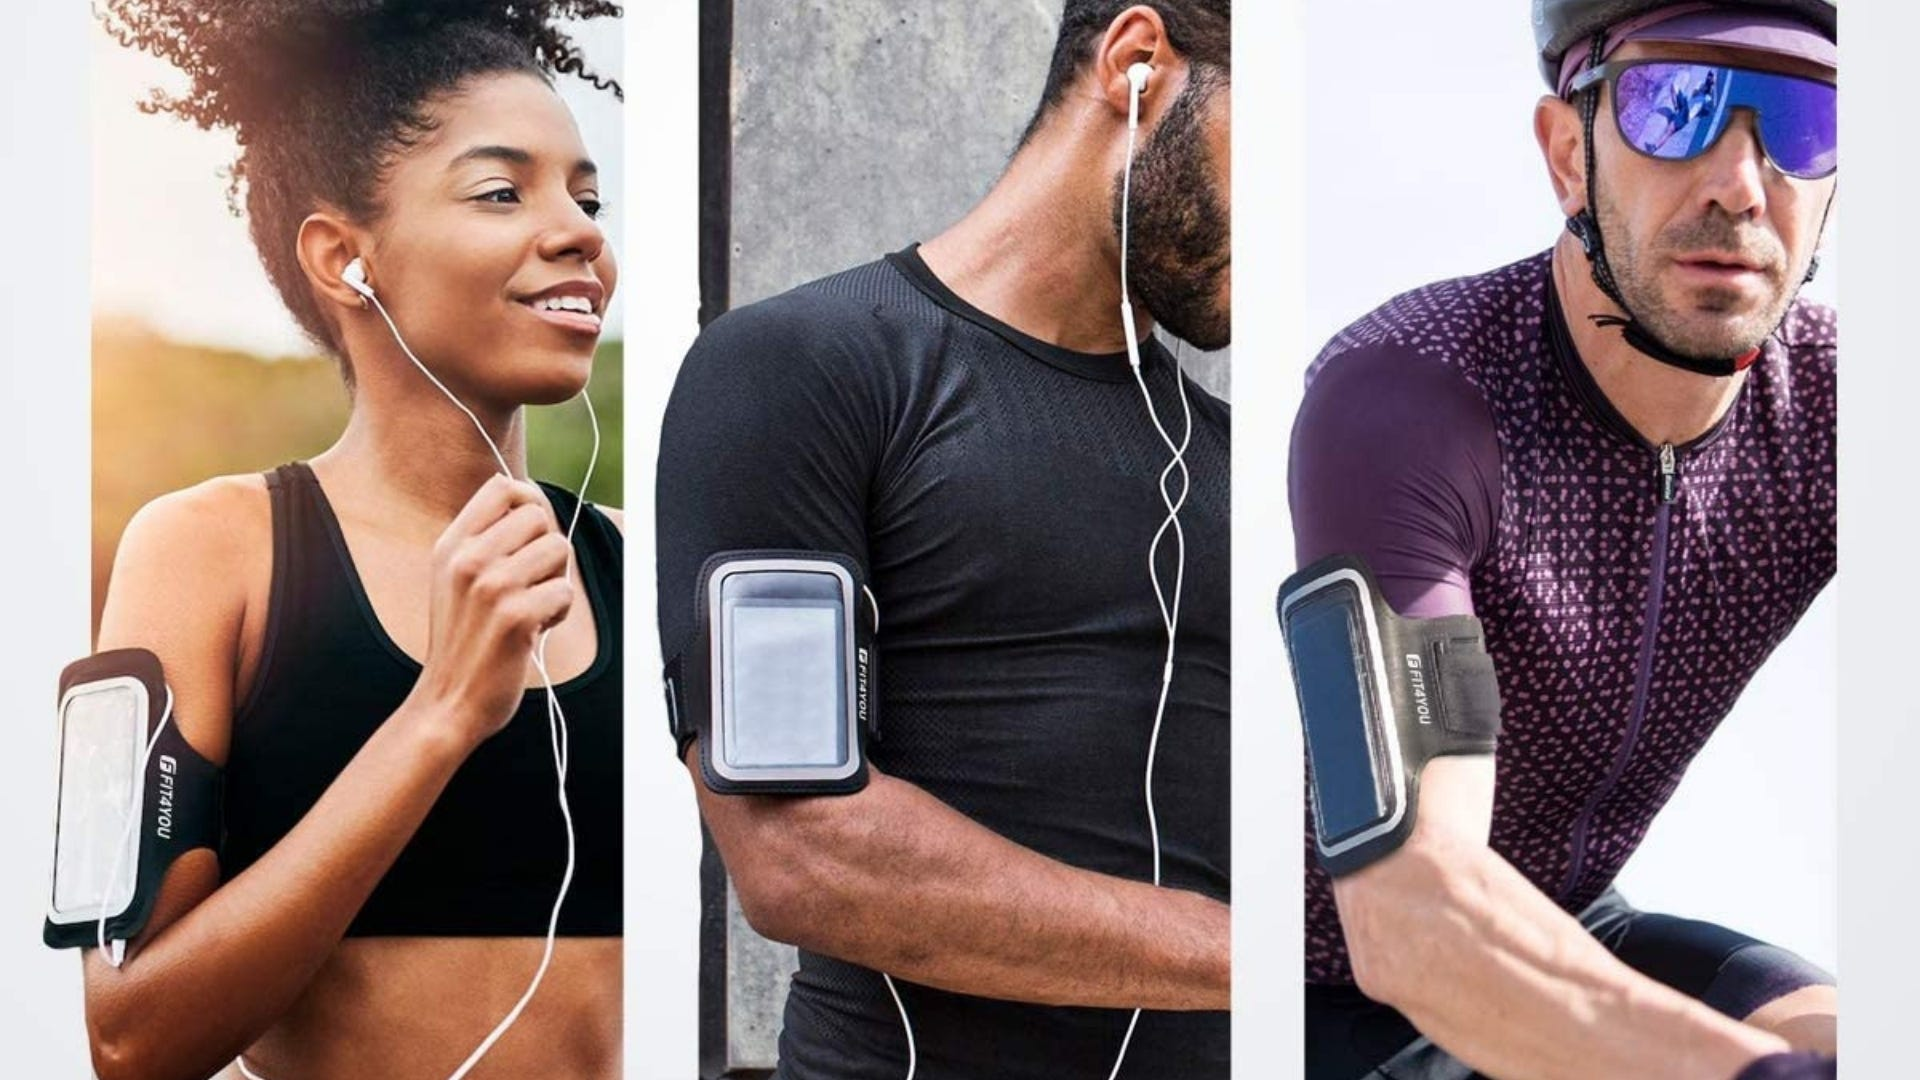 Three people working out while wearing a cell phone armband.